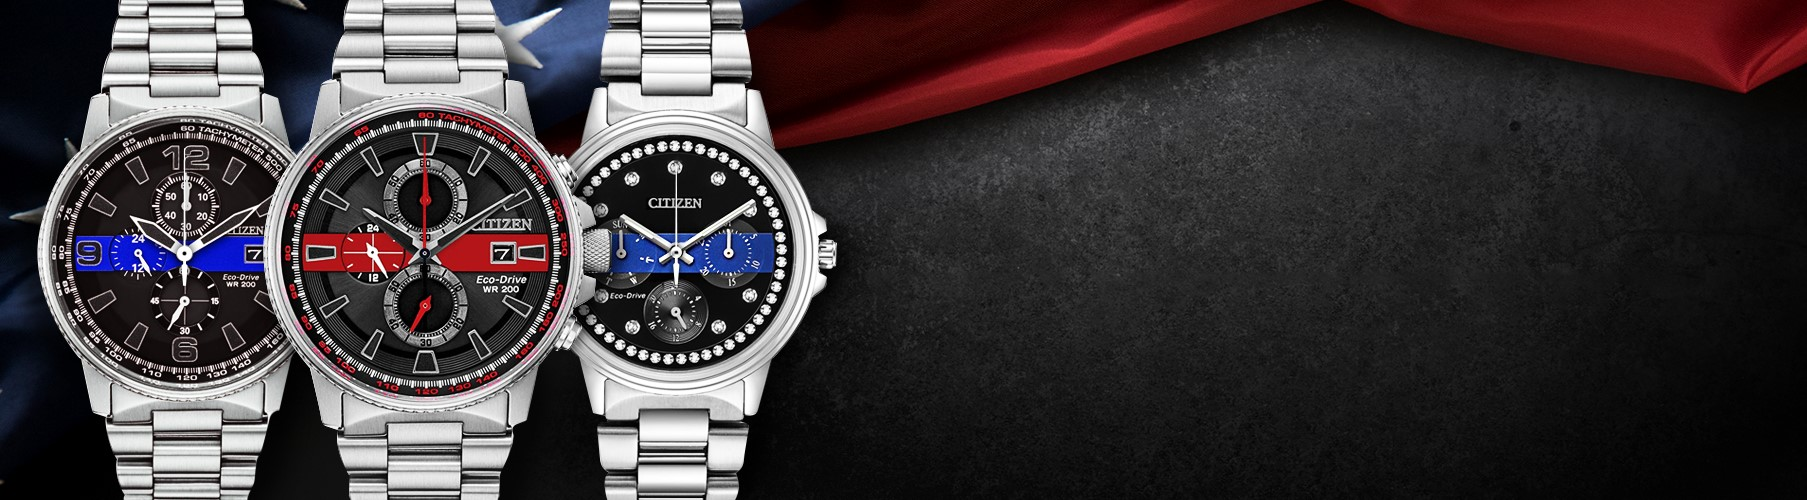 Milwaukee Jeweler Watches from Citizen